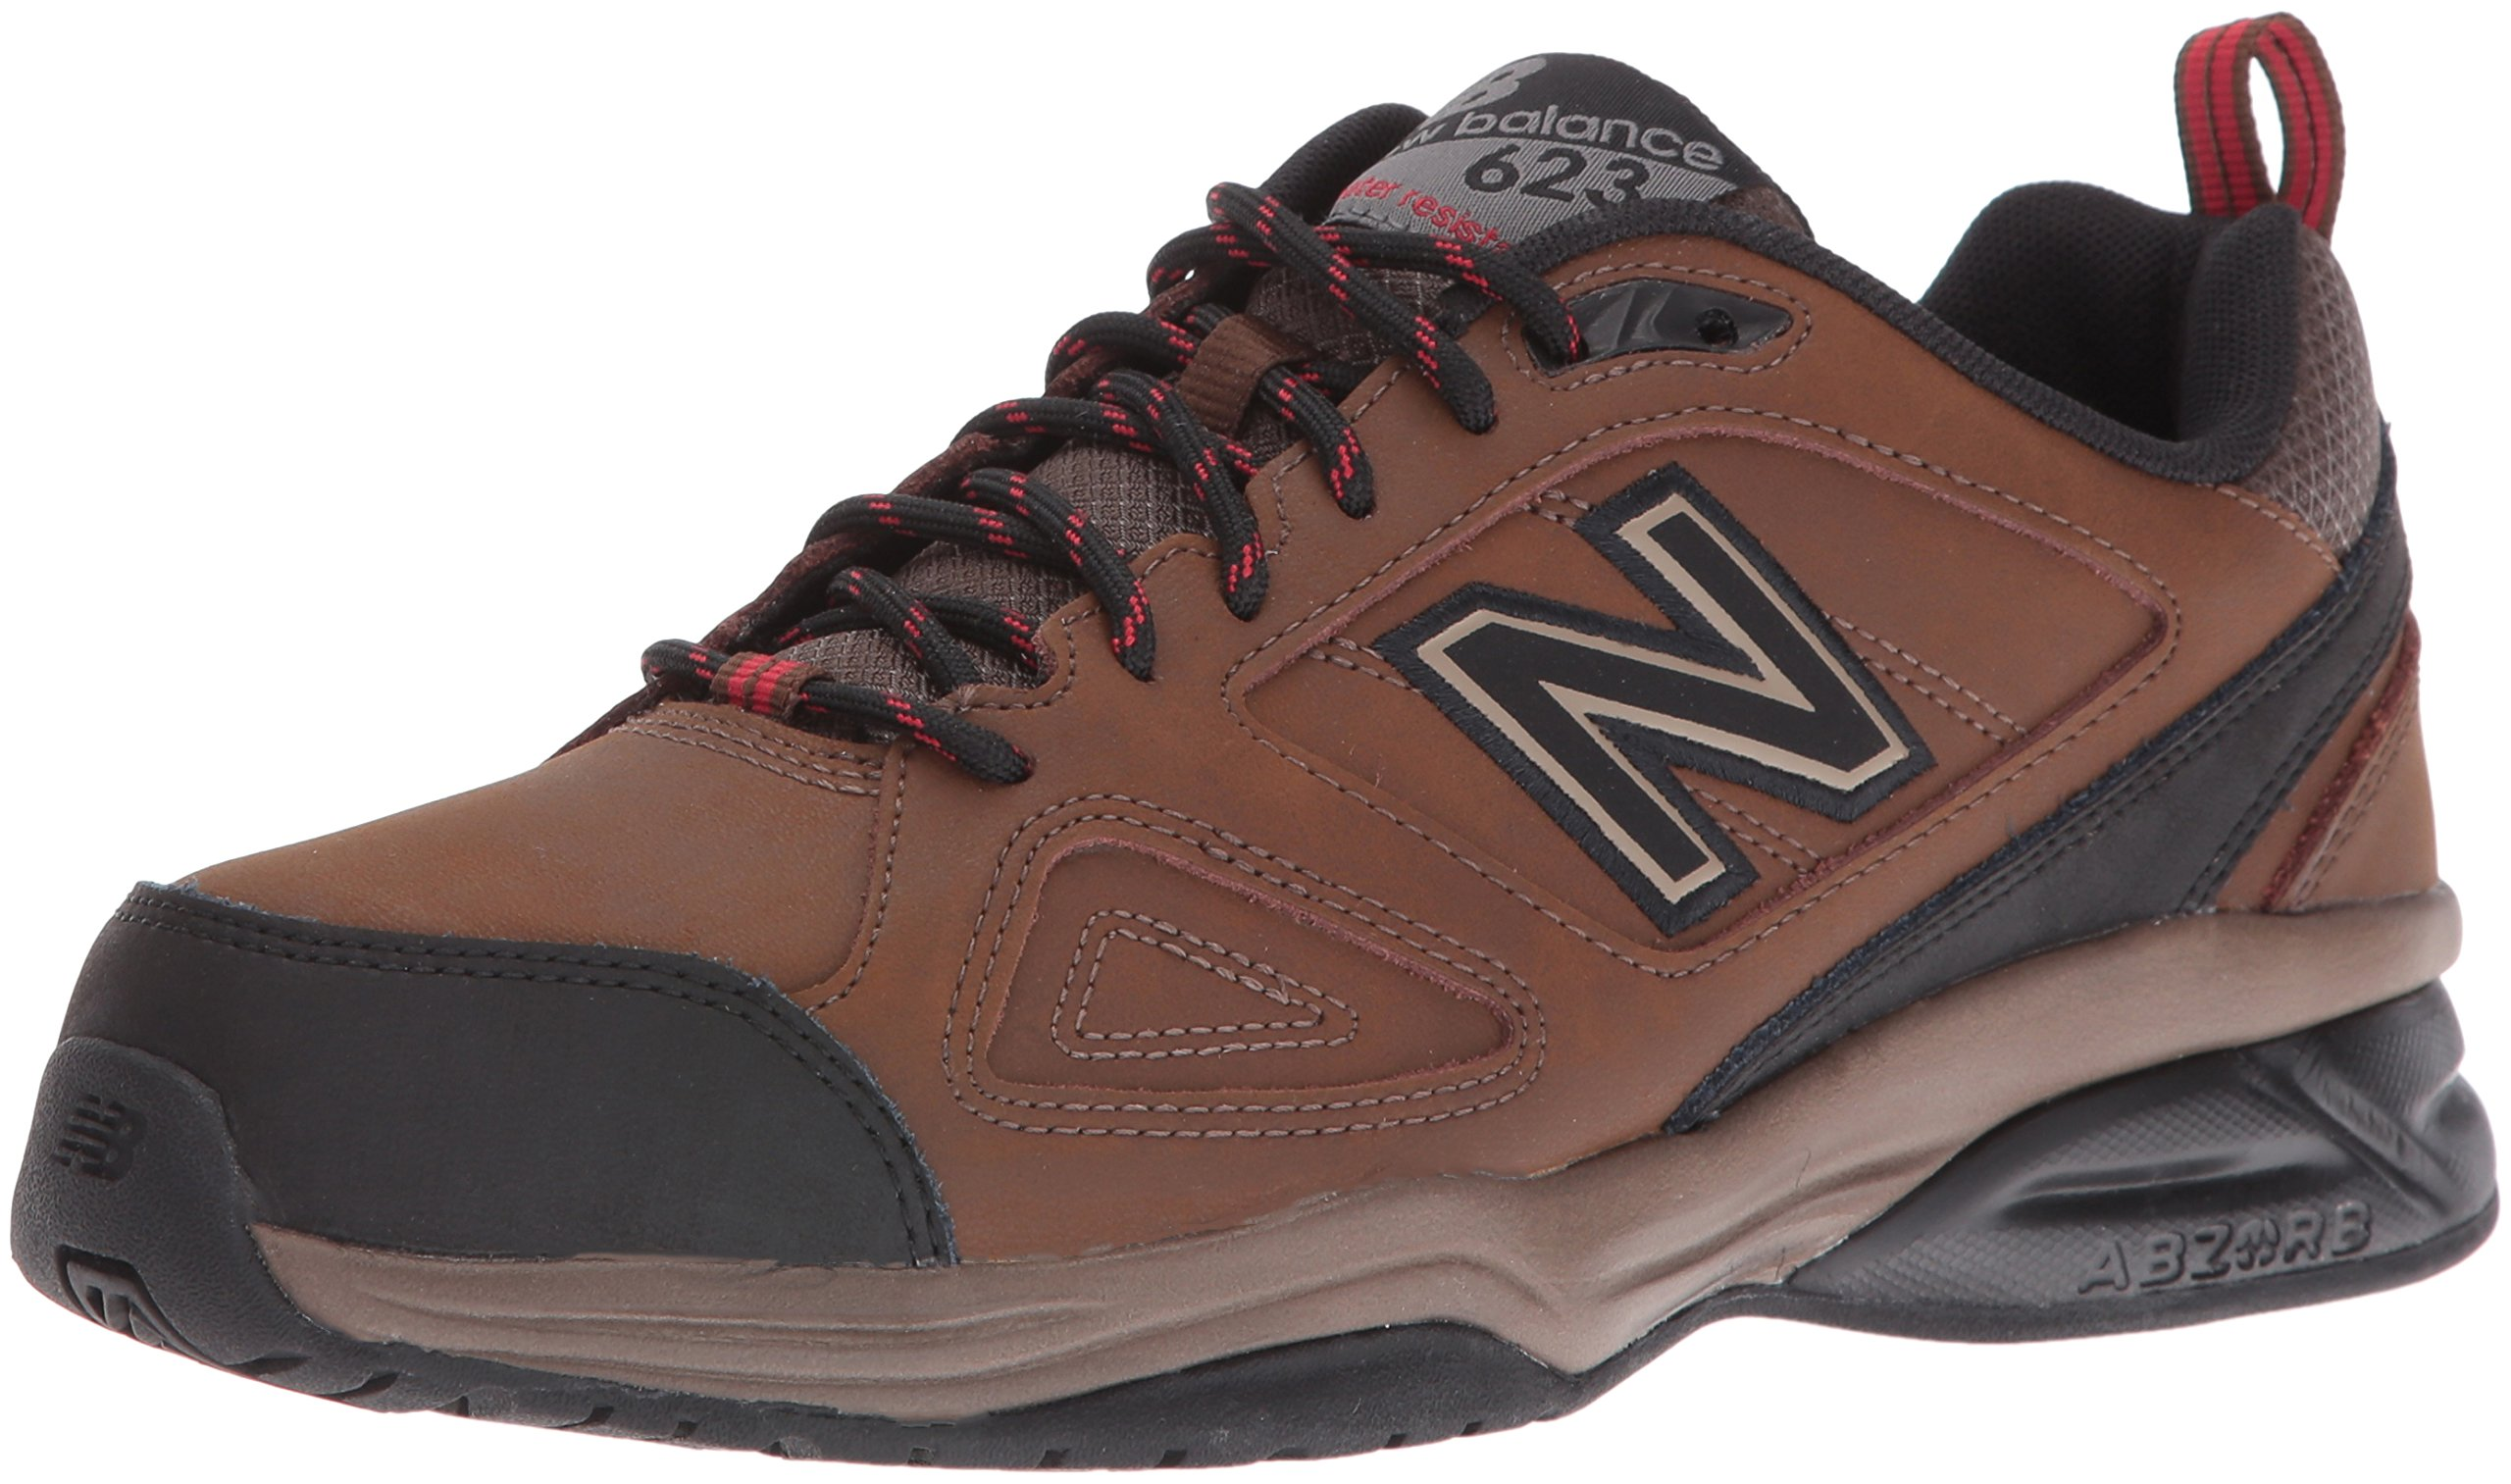 New Balance Men's MX623v3 Training Shoe, Brown, 7.5 D US